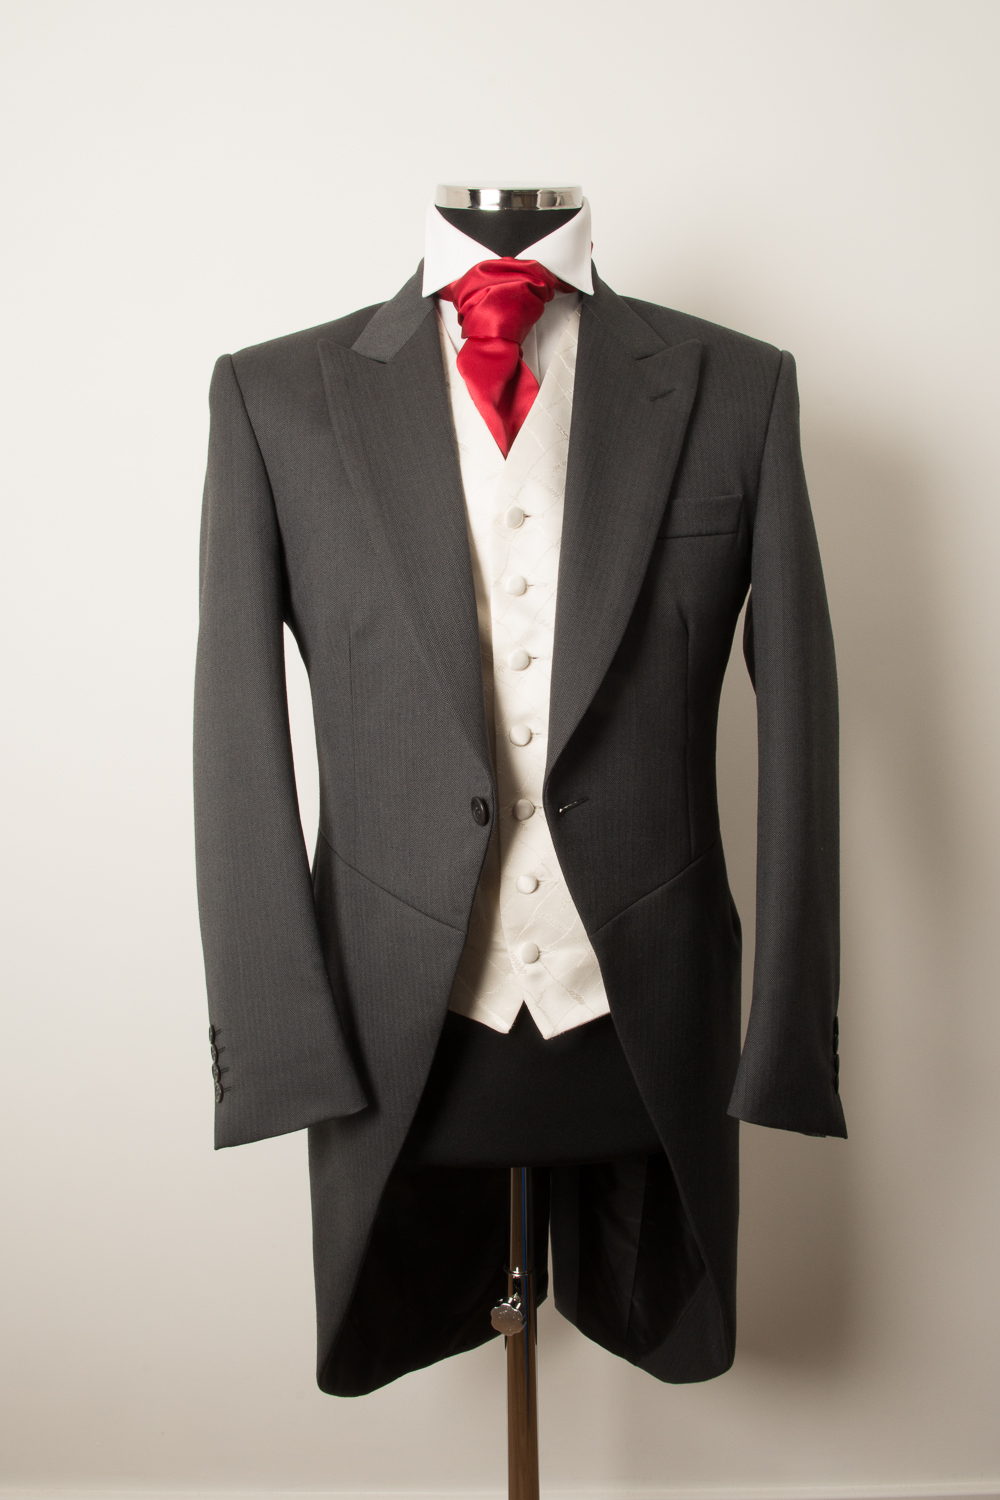 GREY TAILCOAT - WEDDING